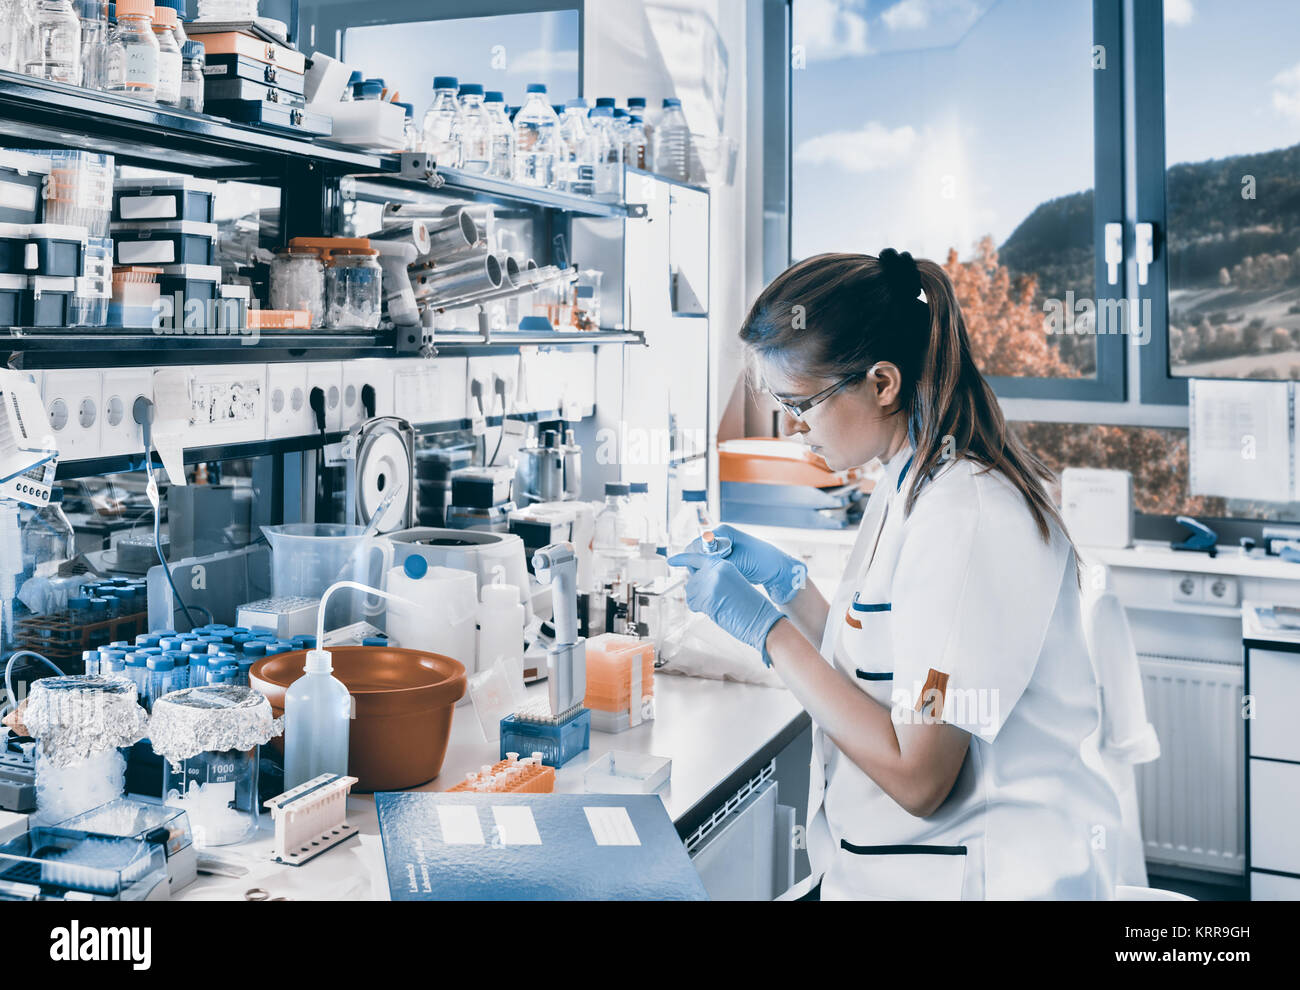 Young scientist works in modern biological lab, toned image - Stock Image